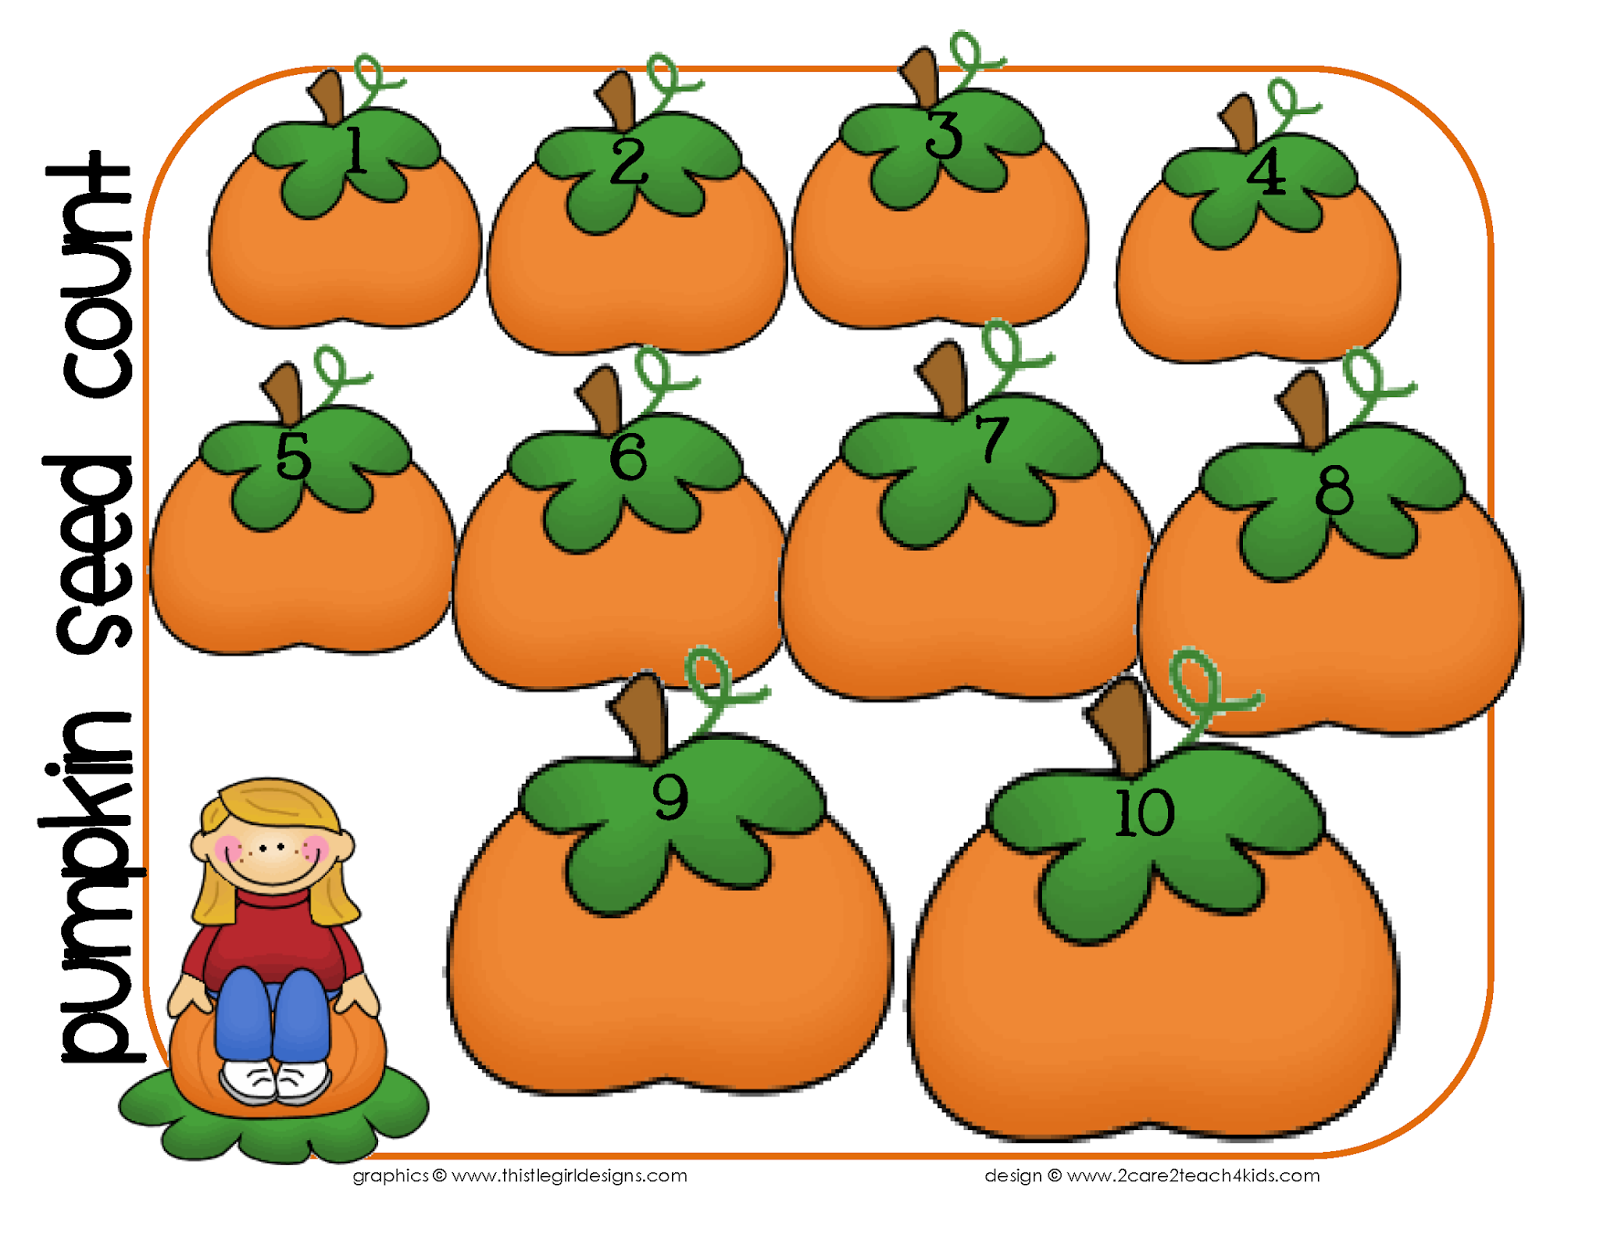 2care2teach4kids Pumpkin Picking Time A Patch Of Free Printable Activity Pages